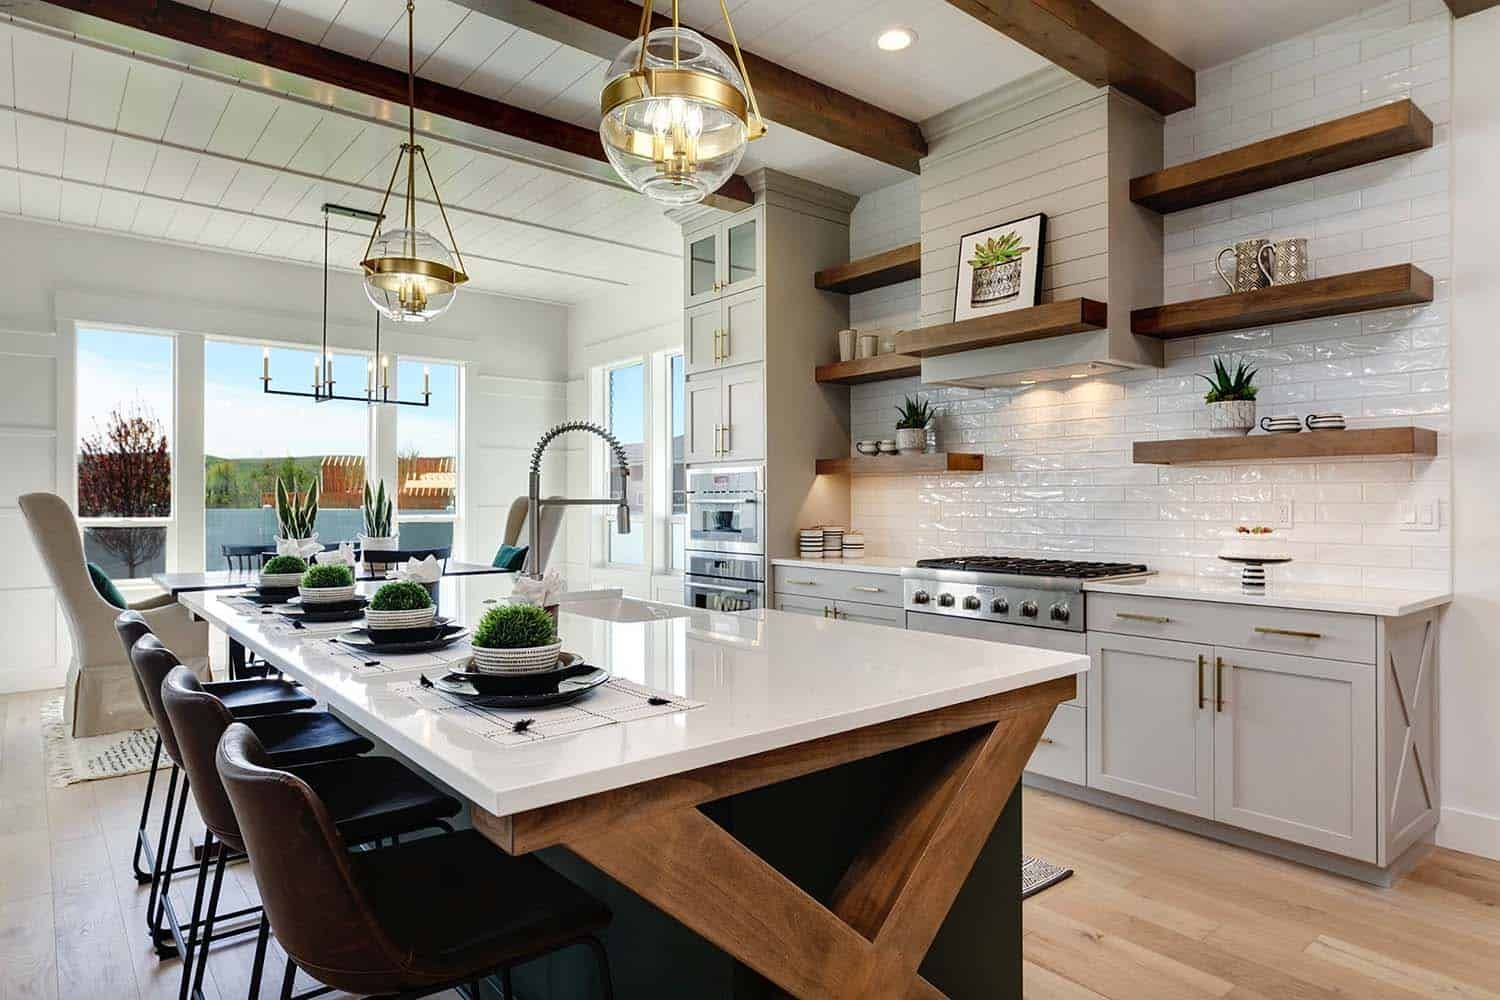 This stunning modern farmhouse in Idaho will take your breath away